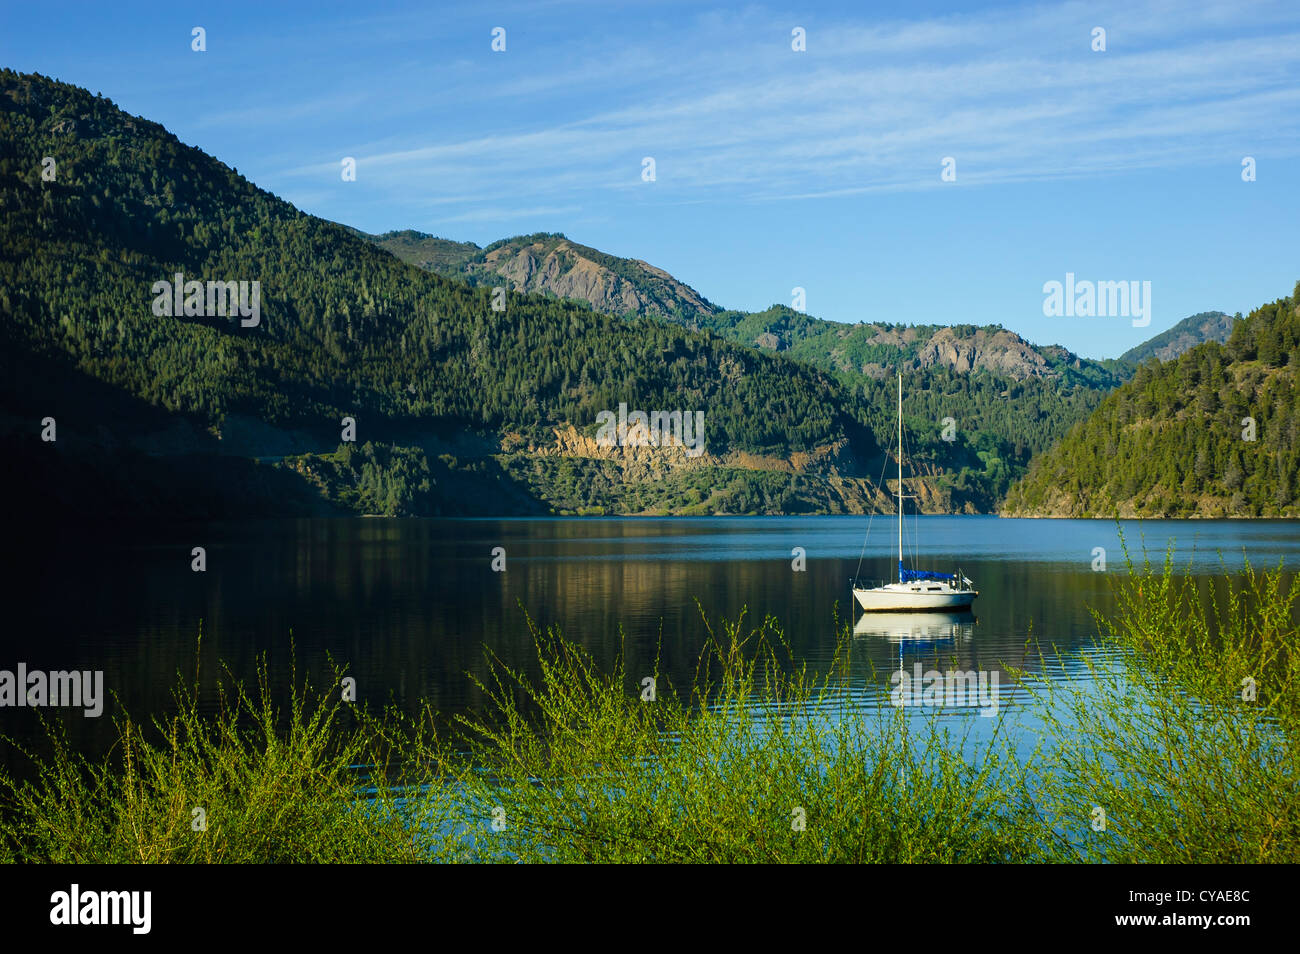 single small white sail boat on the Lácar Lake in the morning light near San Martin de los Andes in Argentina - Stock Image